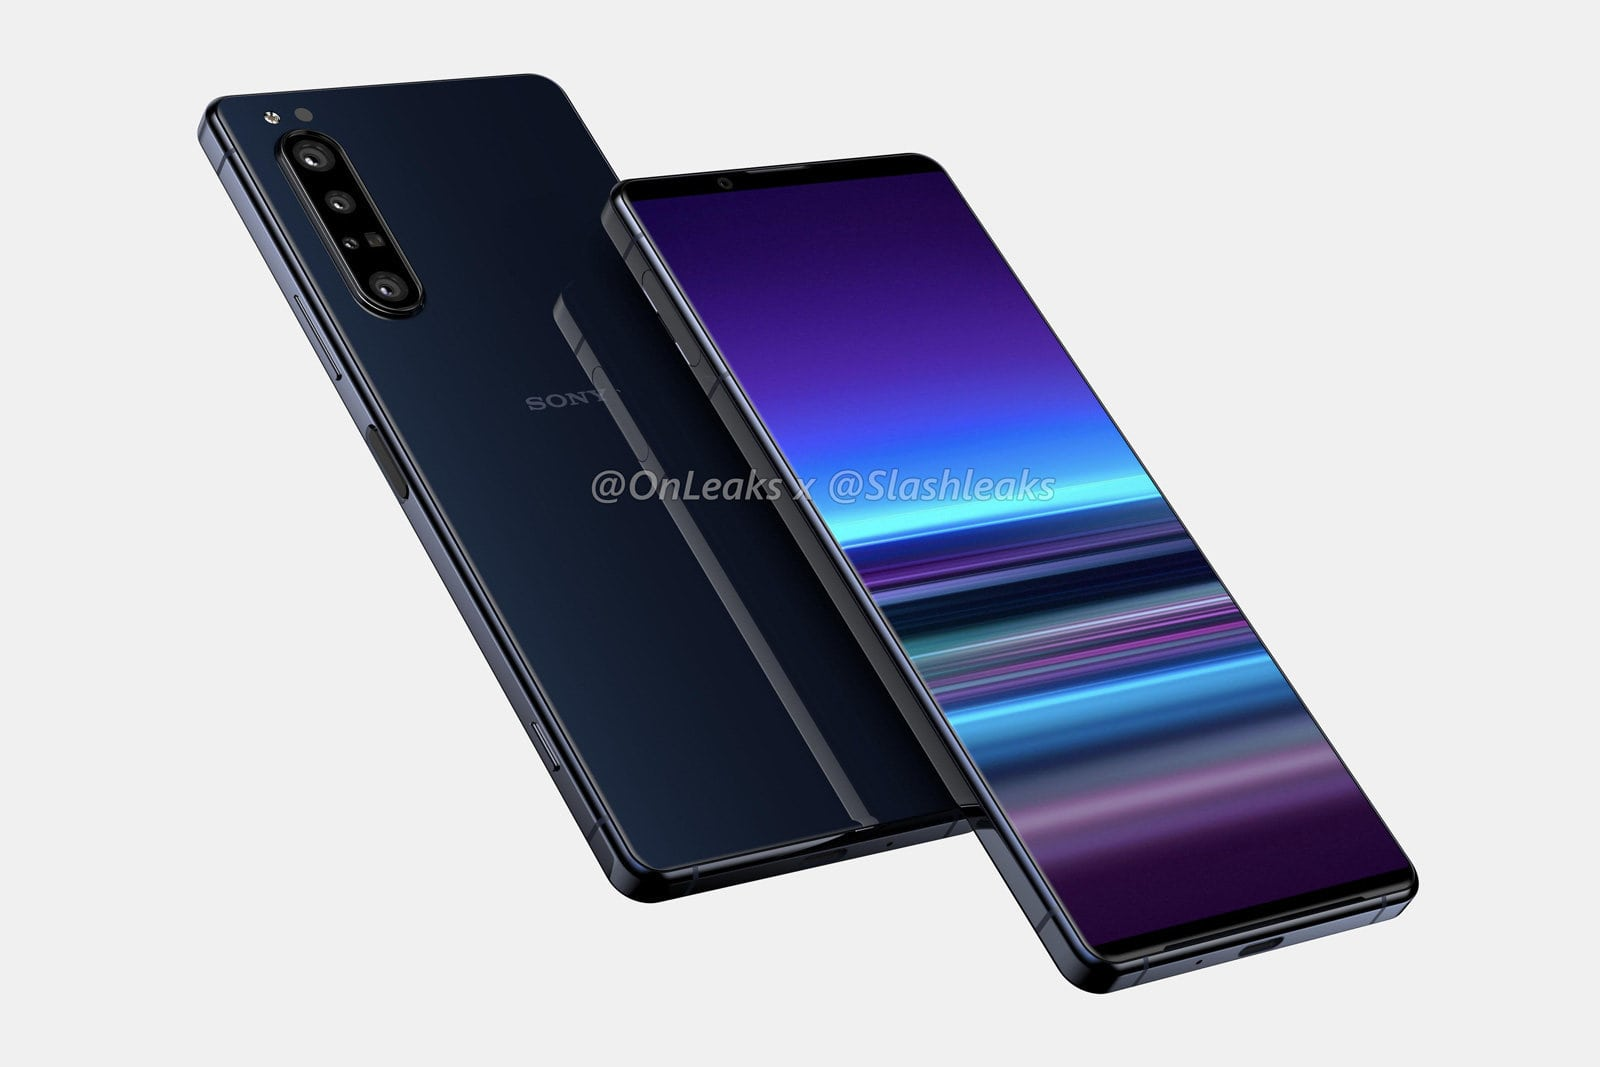 9. Sony Xperia 5 Plus – A Notch-less Phone with Quad Camera Setup